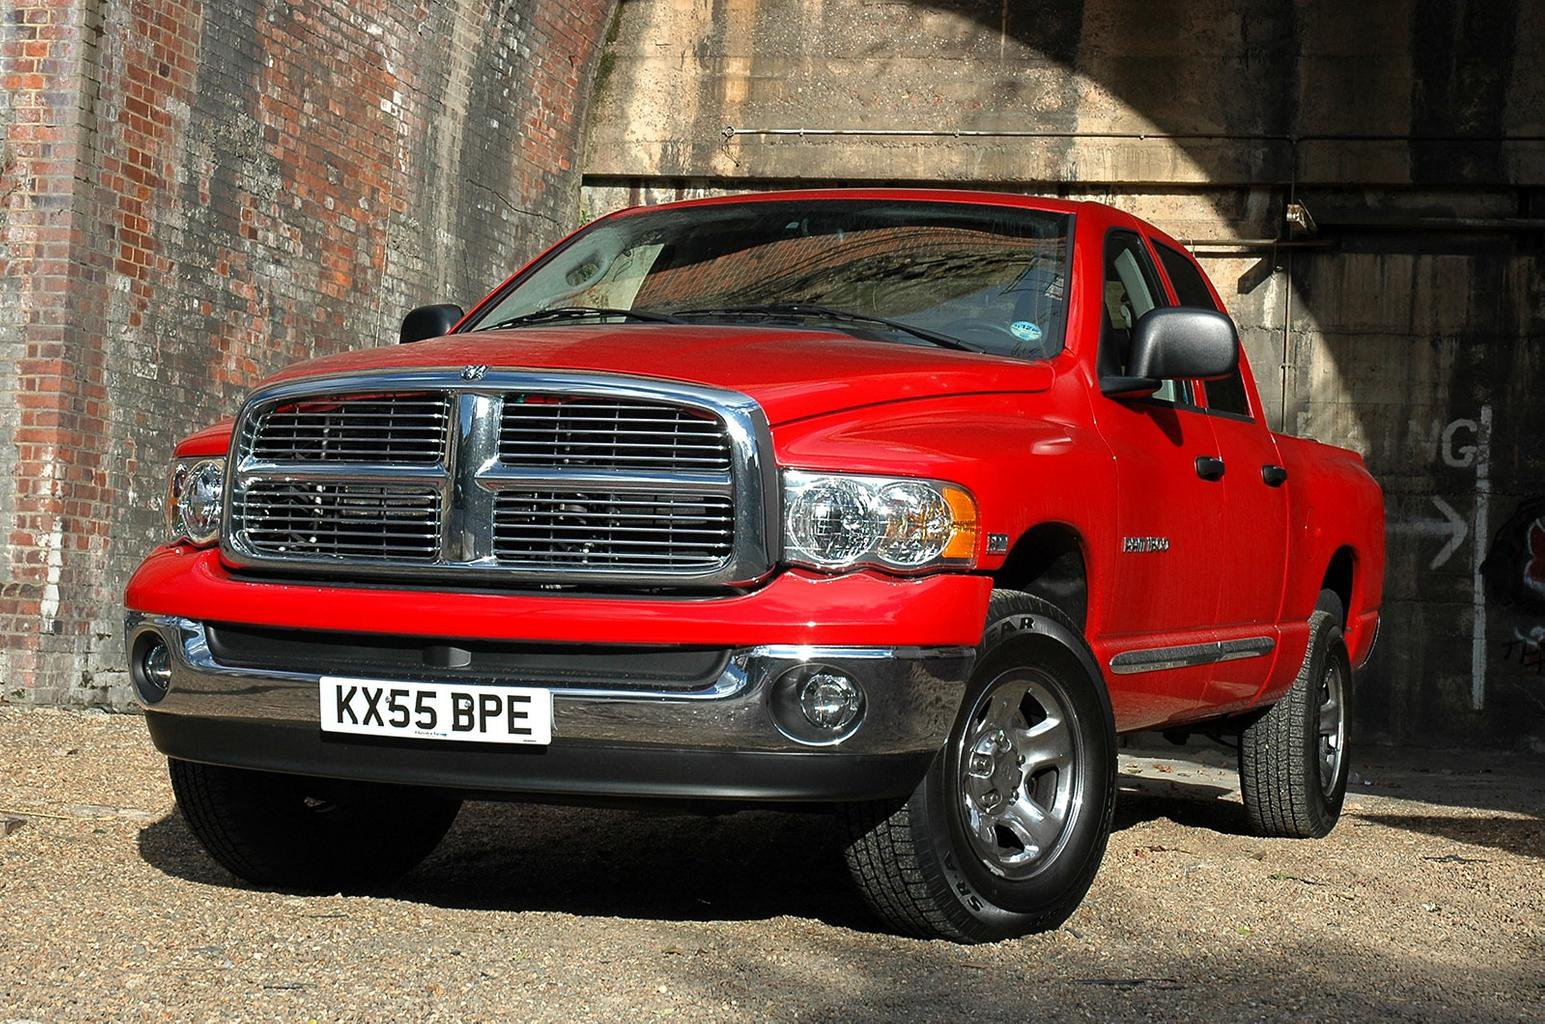 Fiat Chrysler Automobiles accused of emissions cheating in USA